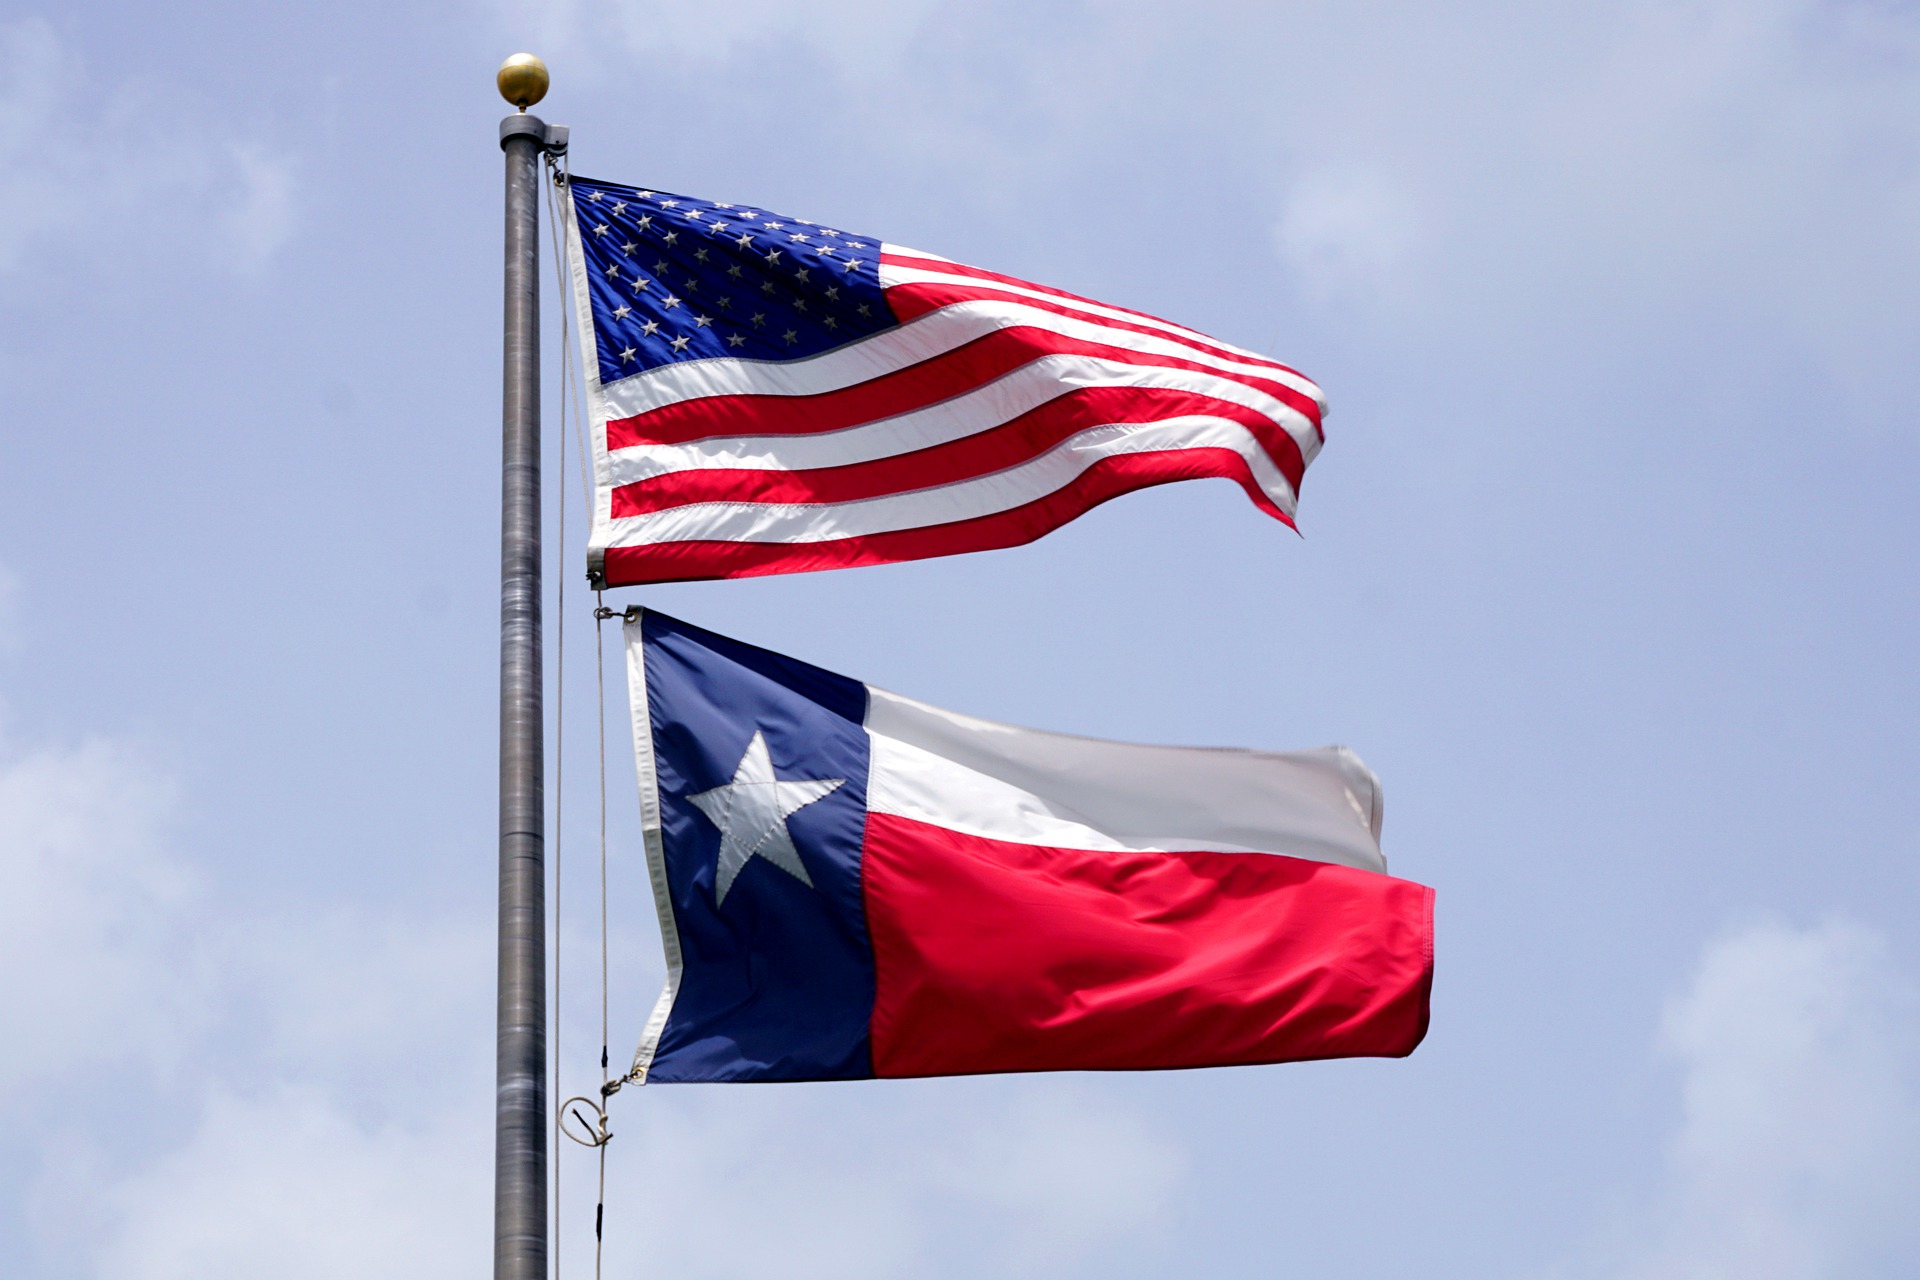 The state flag of Texas is shown flying on a flag pole beneath the flag of the United States.